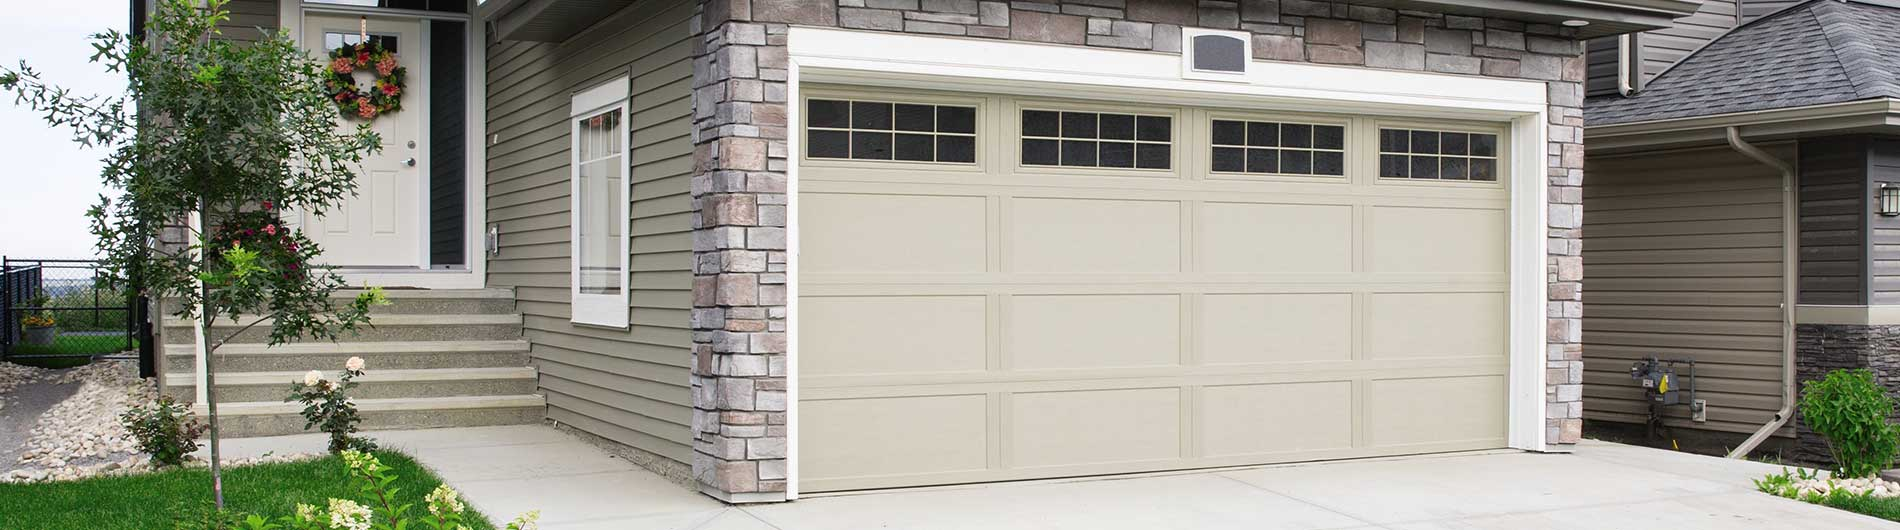 21 wayne dalton garage door 9600 decor23 for Wayne dalton garage doors